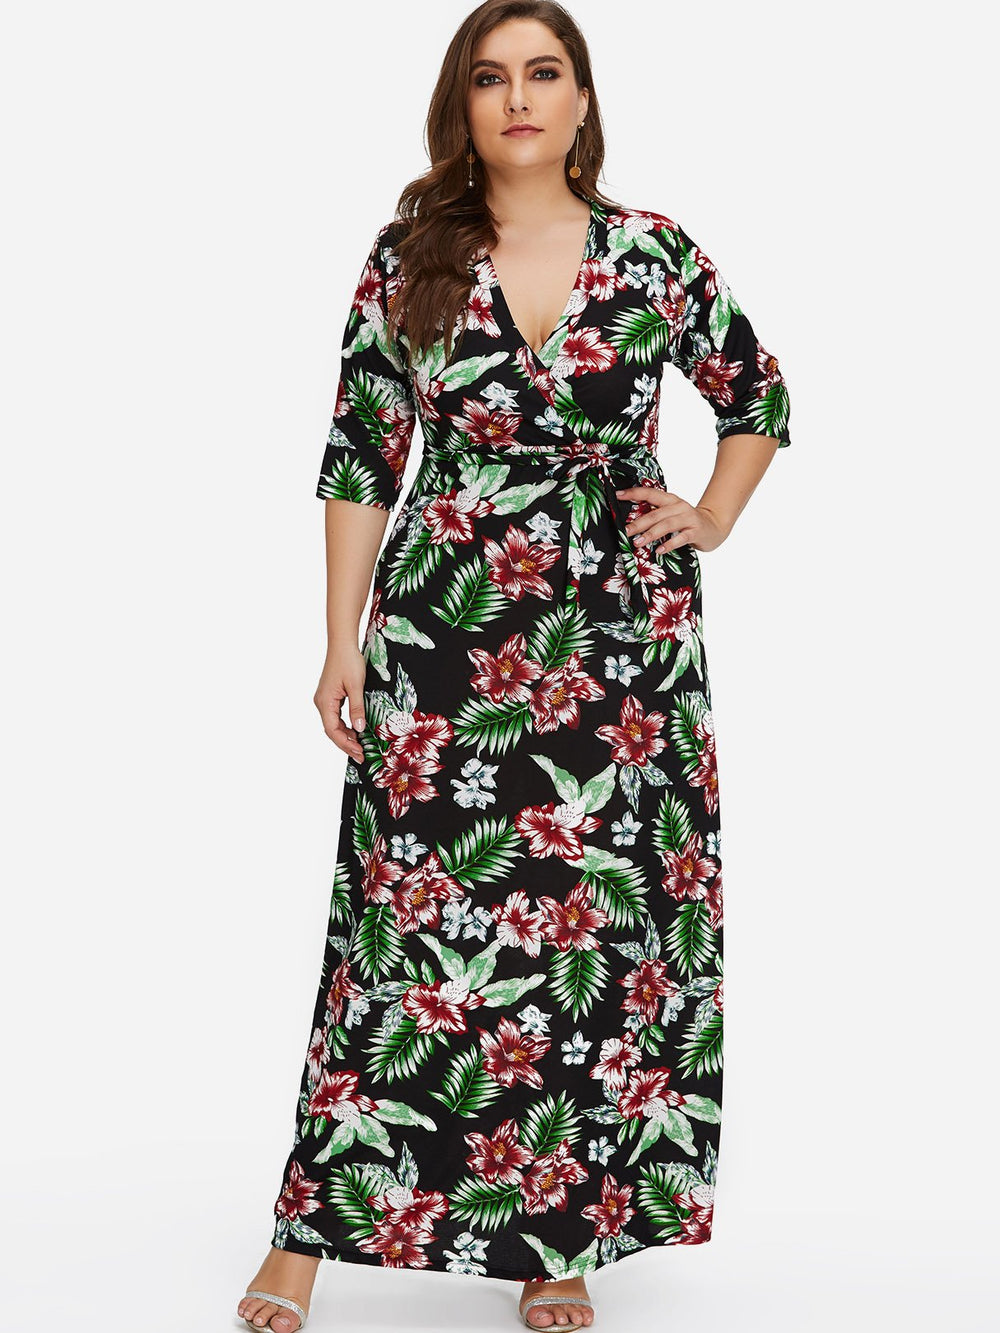 Sexy Plus Size Maxi Dresses